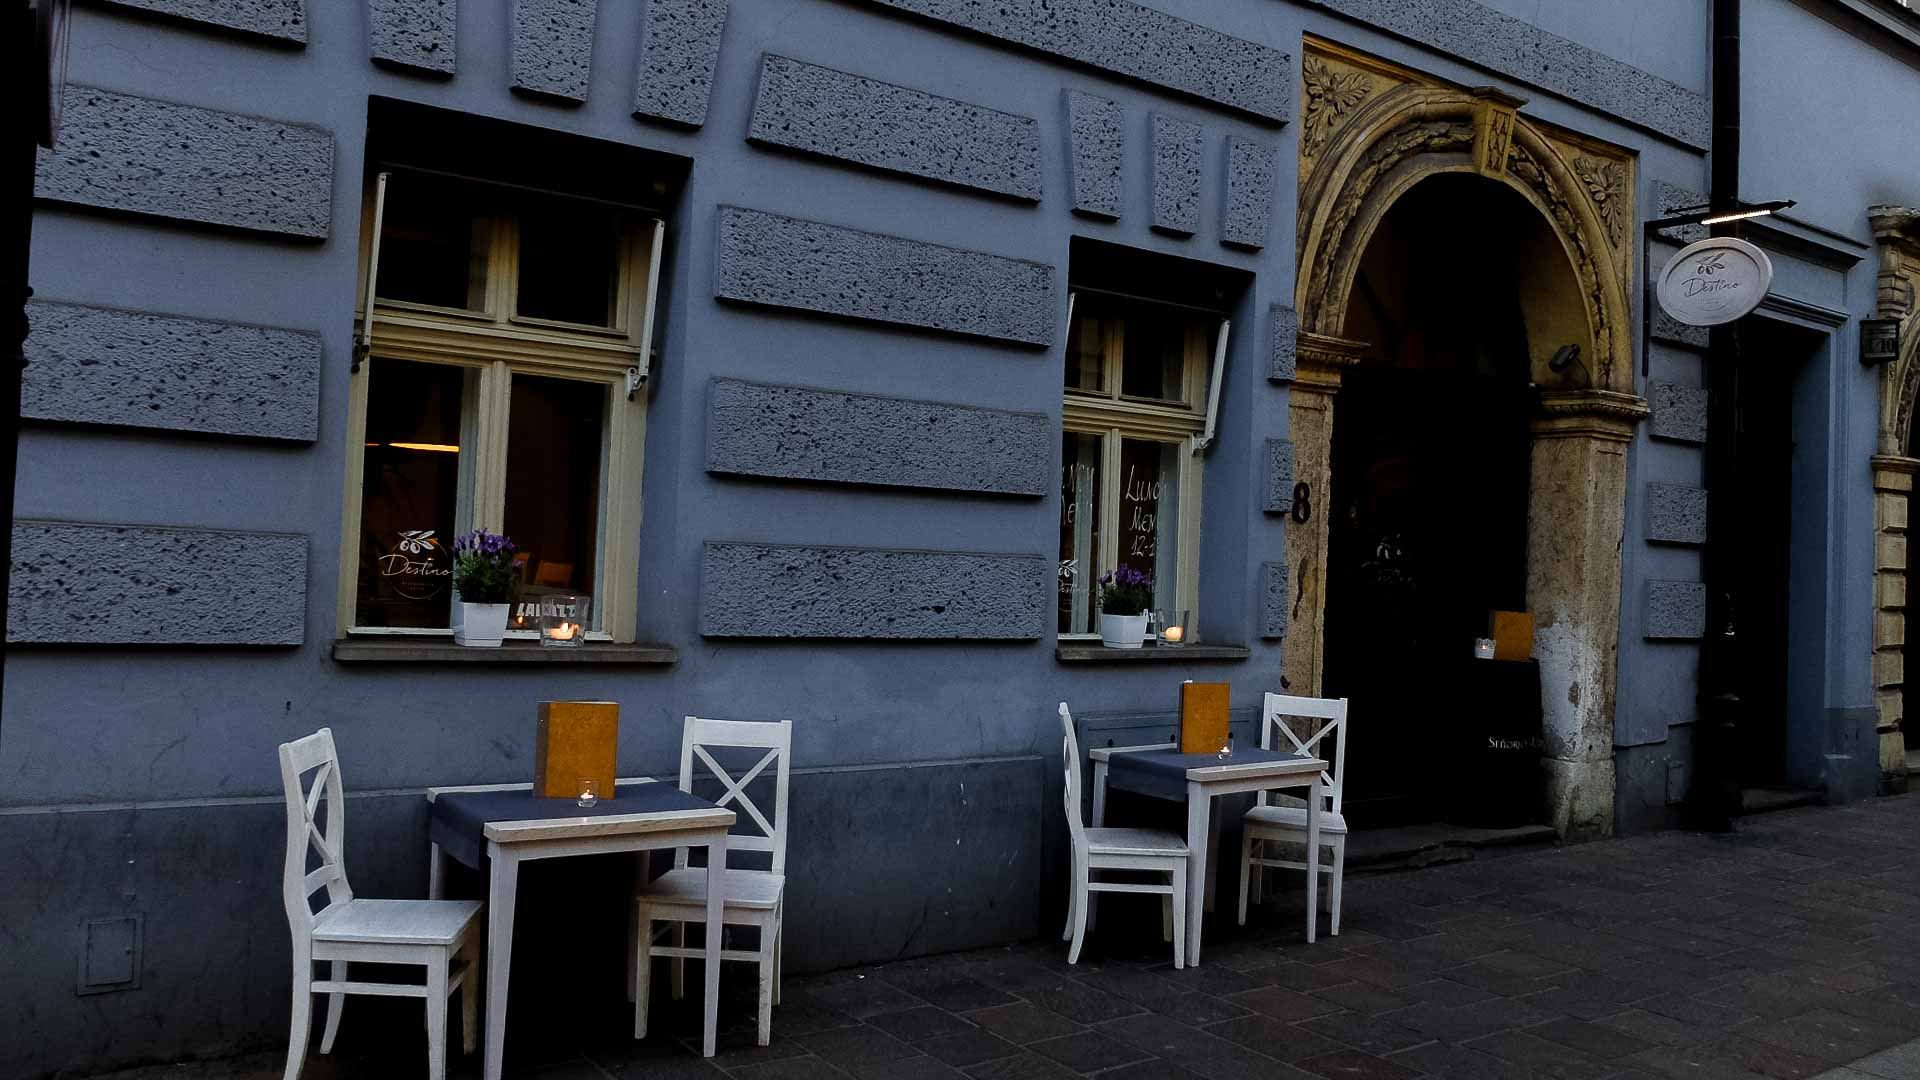 Street places in Krakow